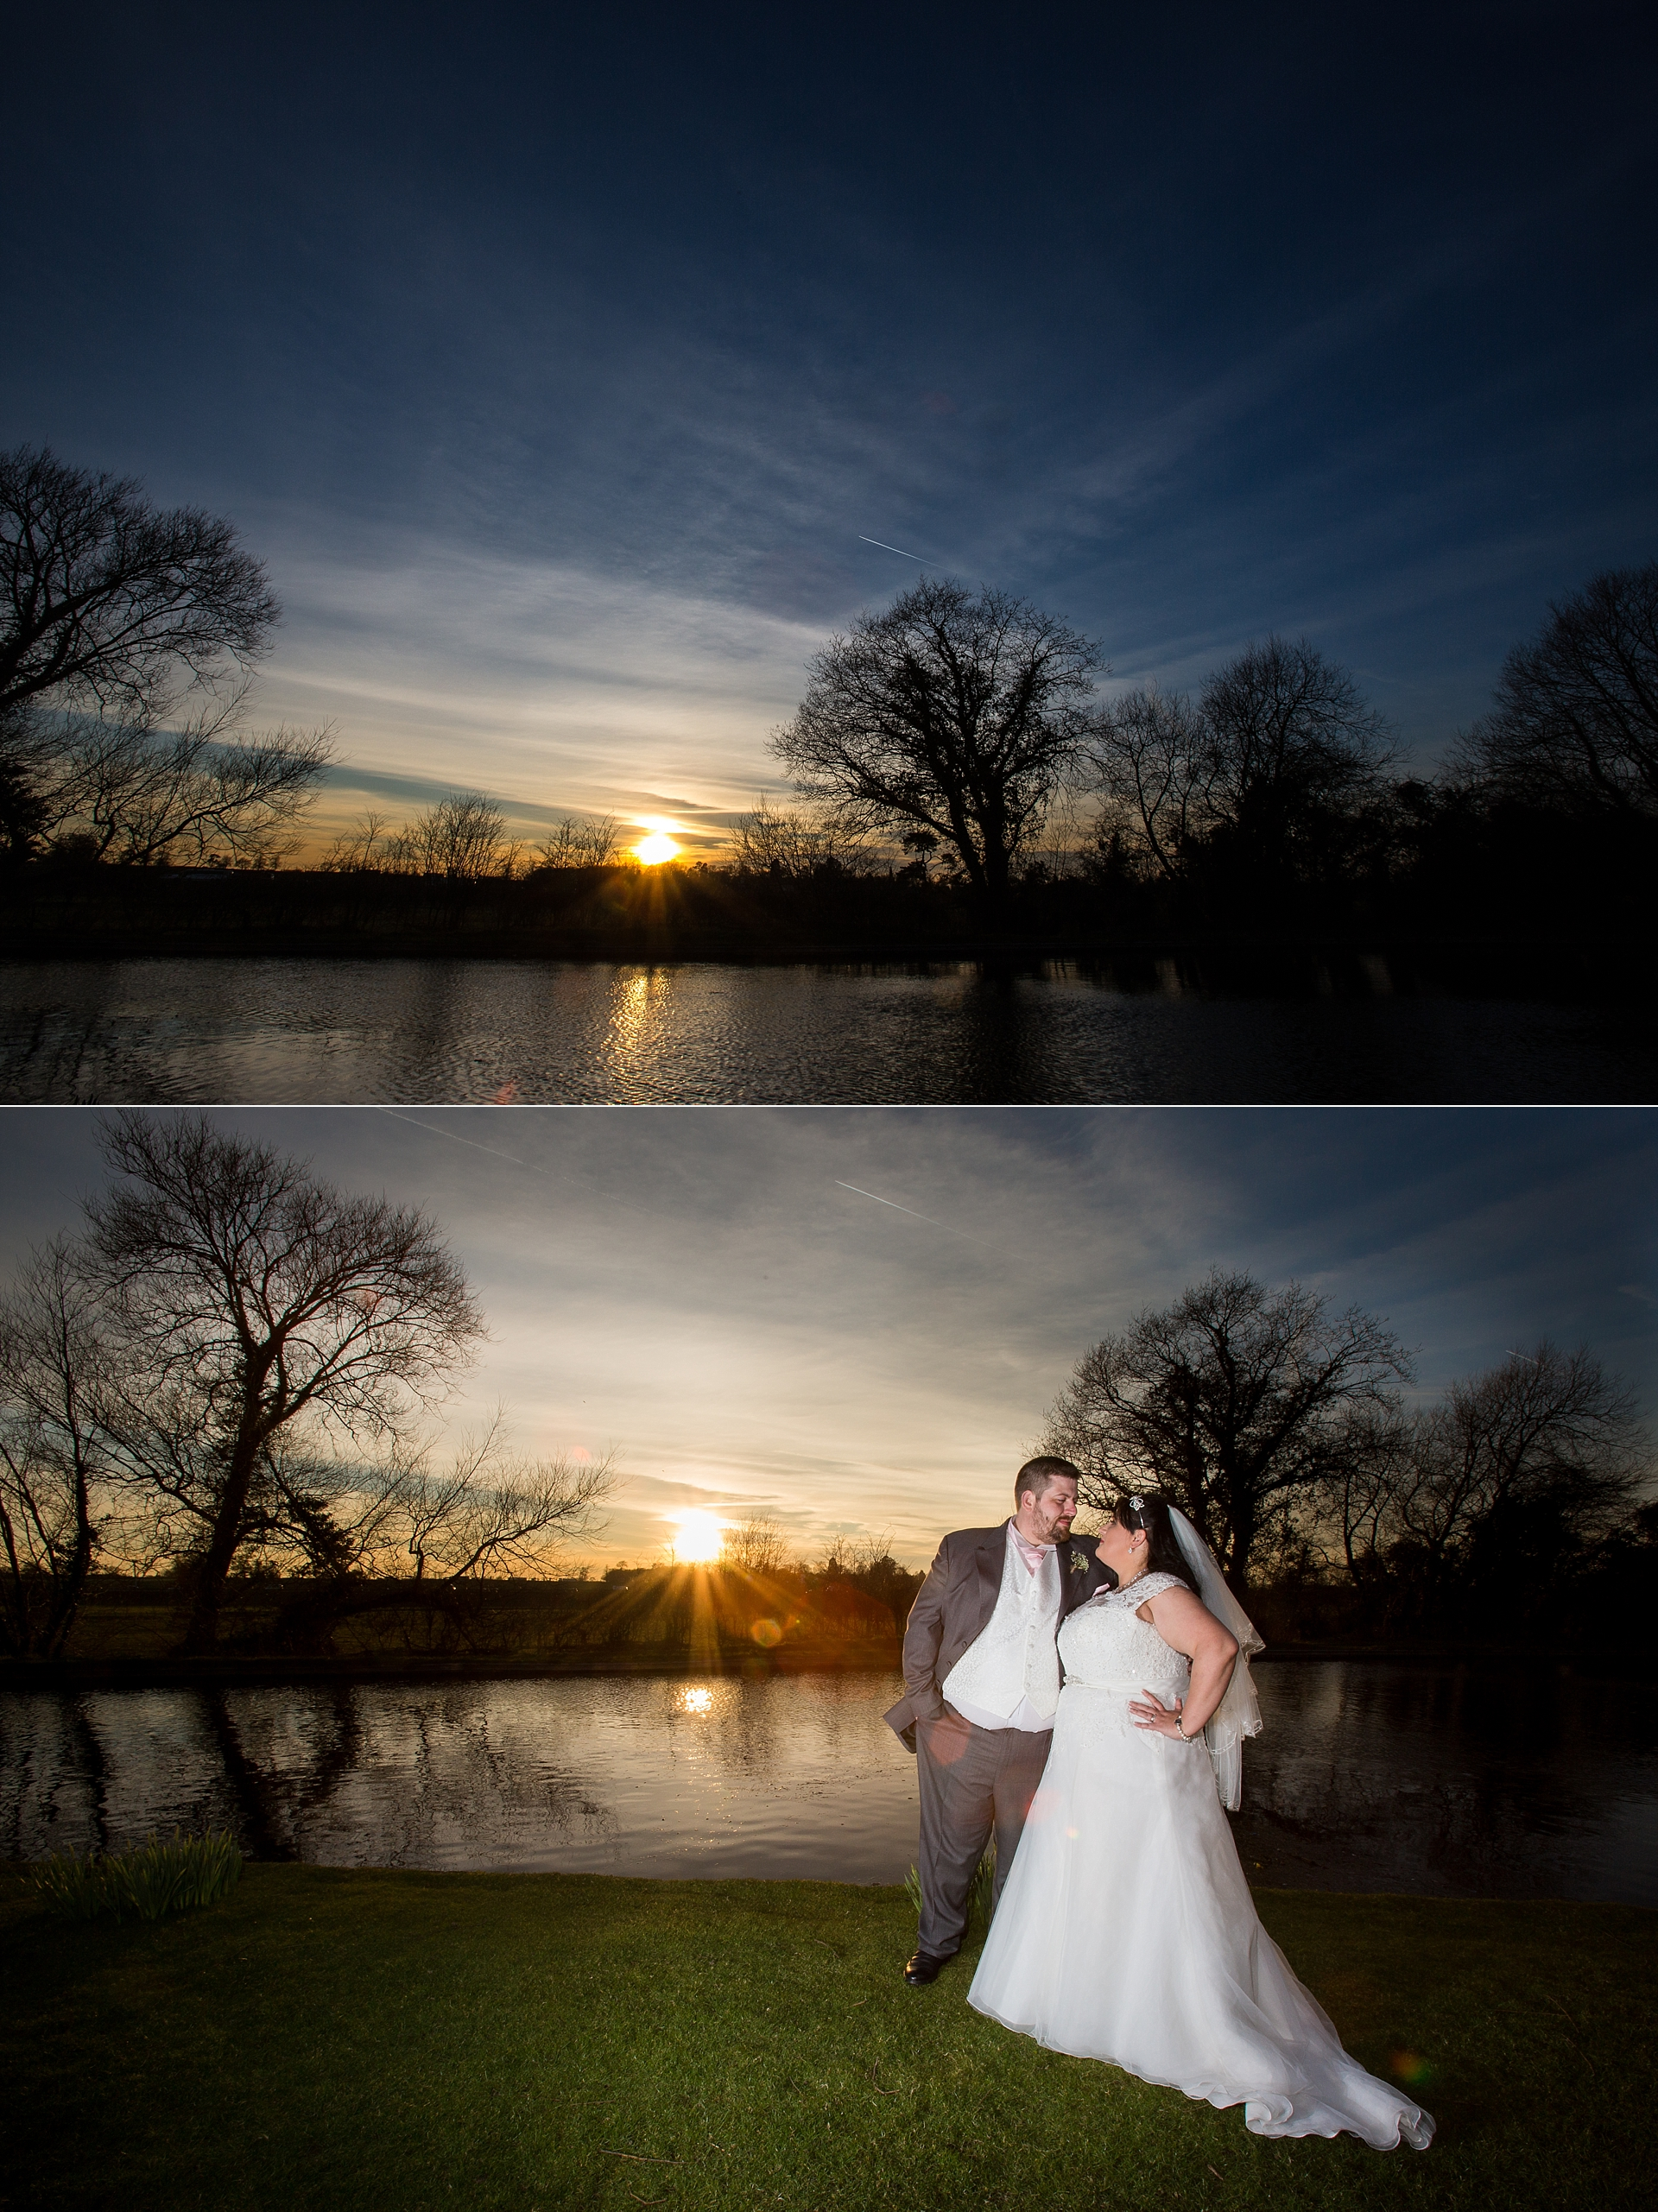 wedding photographer moat house acton trussell stafford 9.jpg